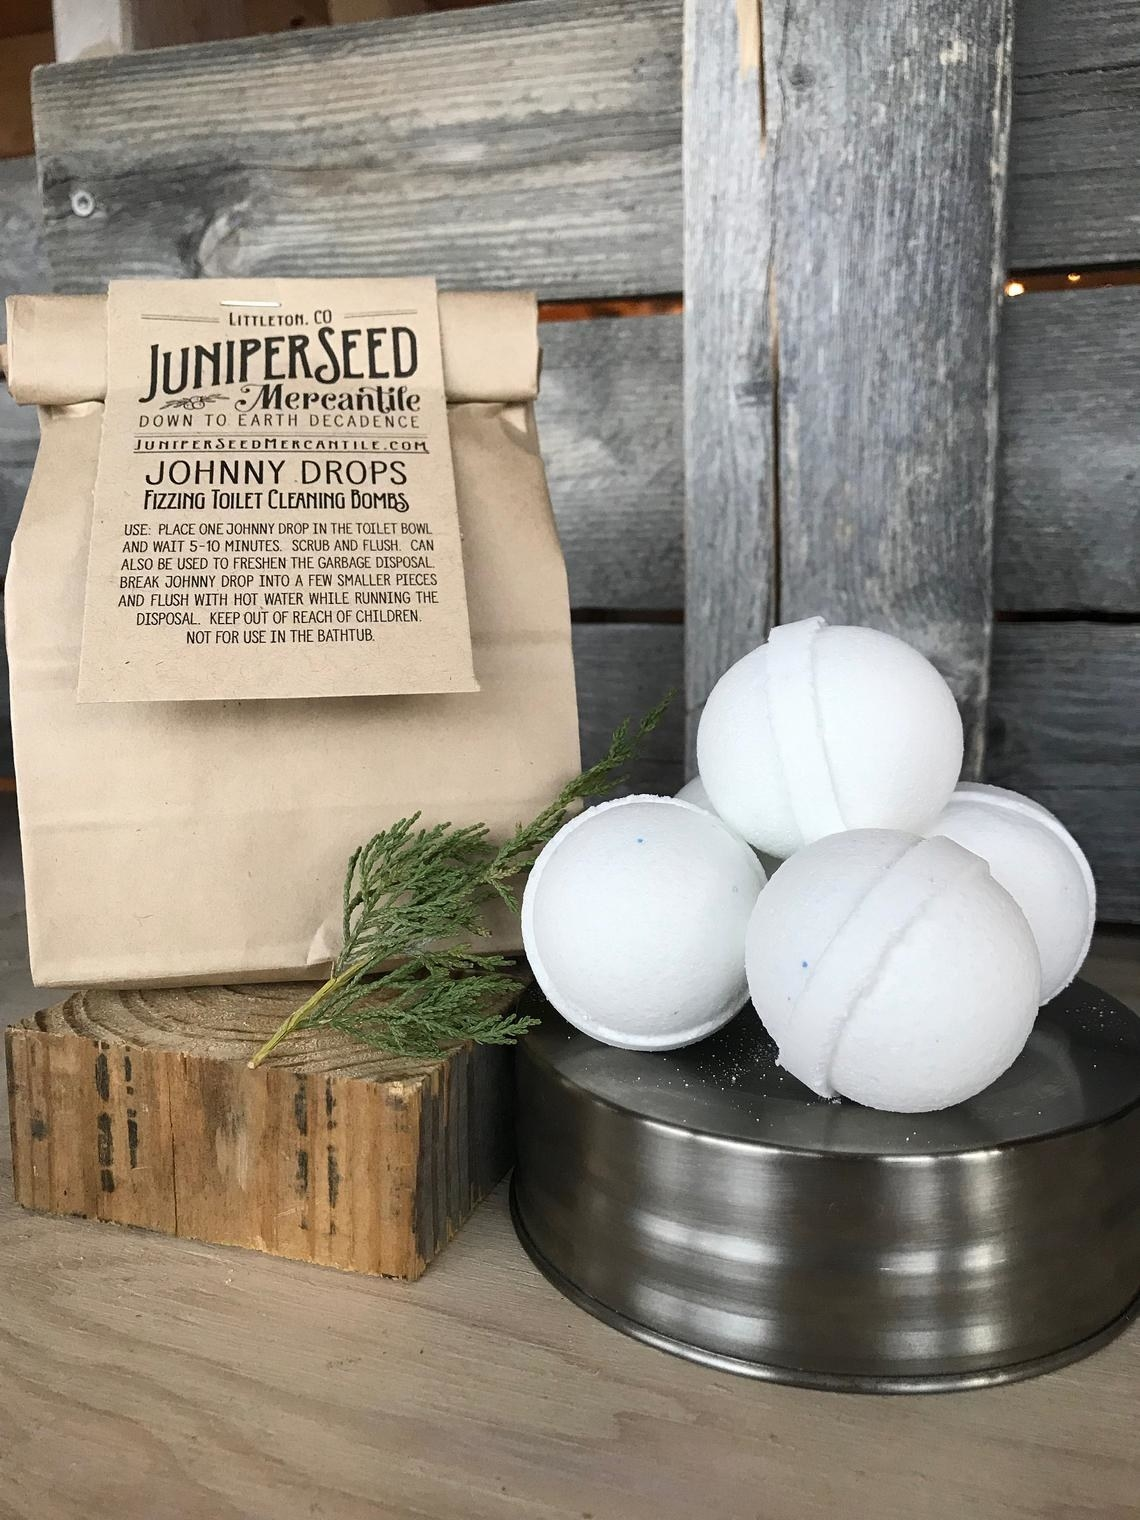 the toilet bombs that are the size of bath bombs